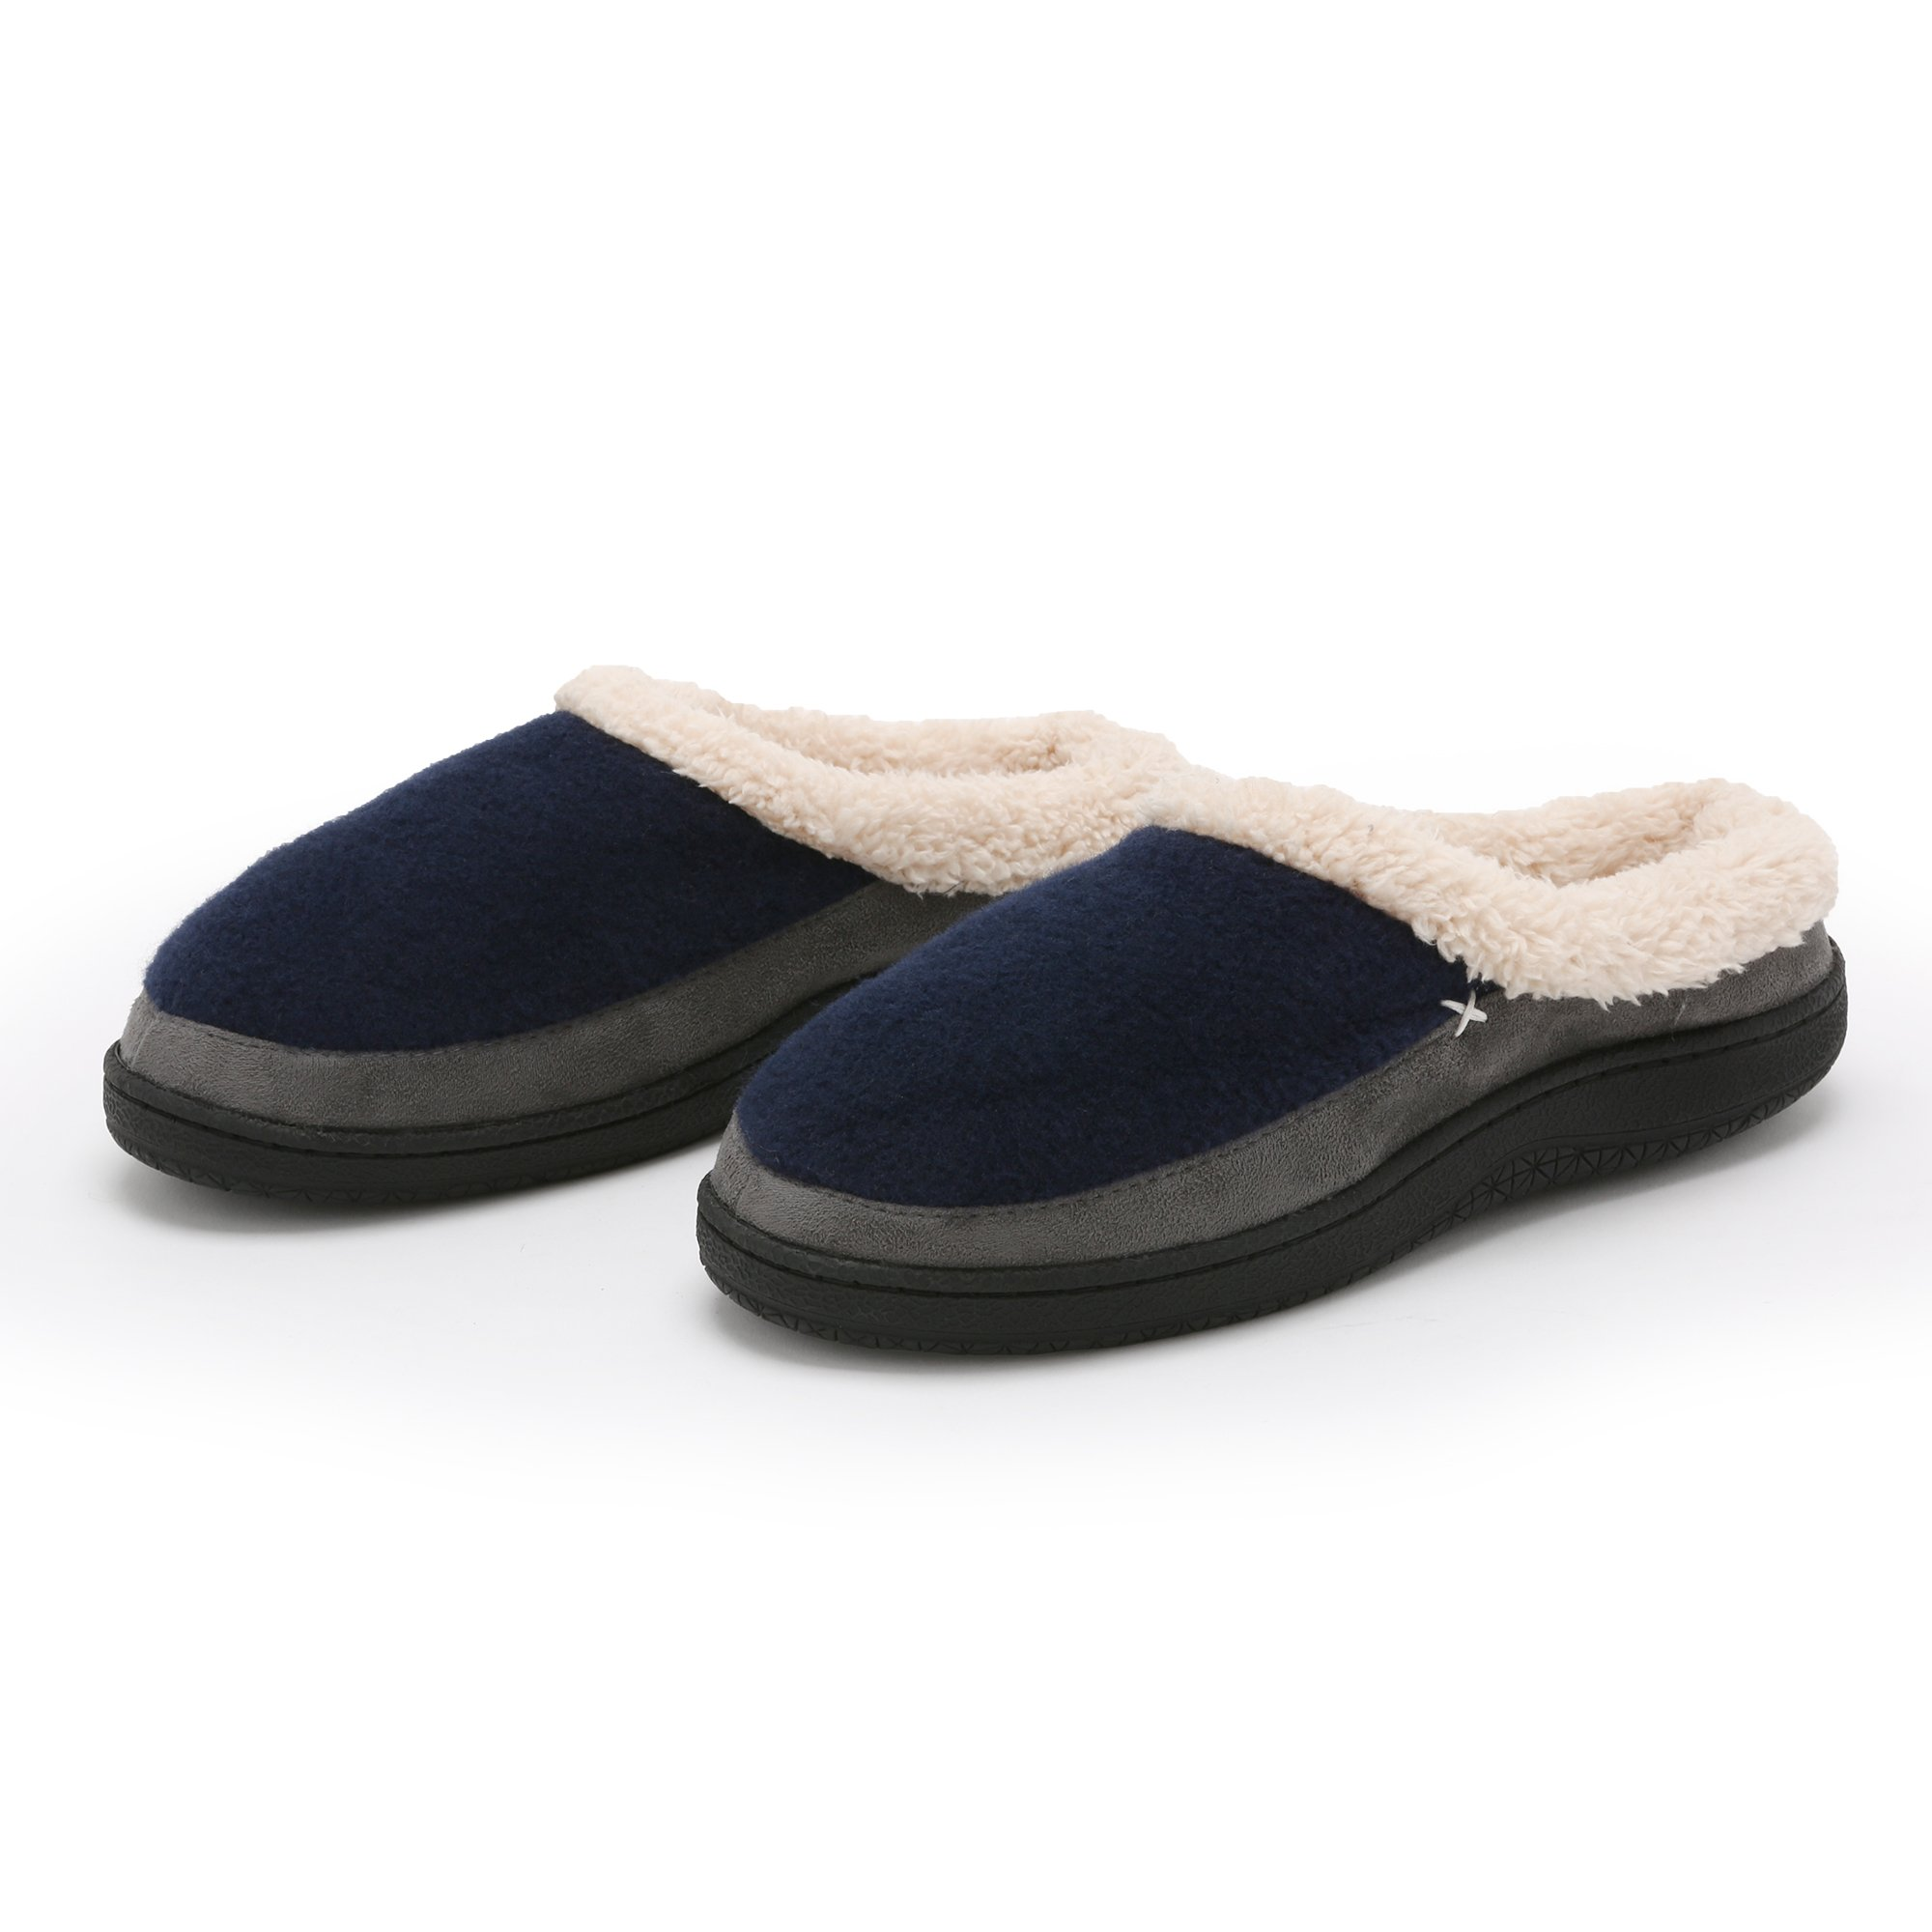 Pembrook Men's Slippers – Comfortable Memory Foam + Wool (Navy Size XL) Indoor and Outdoor Non-Skid Sole - Great Plush Slip On House Shoes for adults, Men, Boys